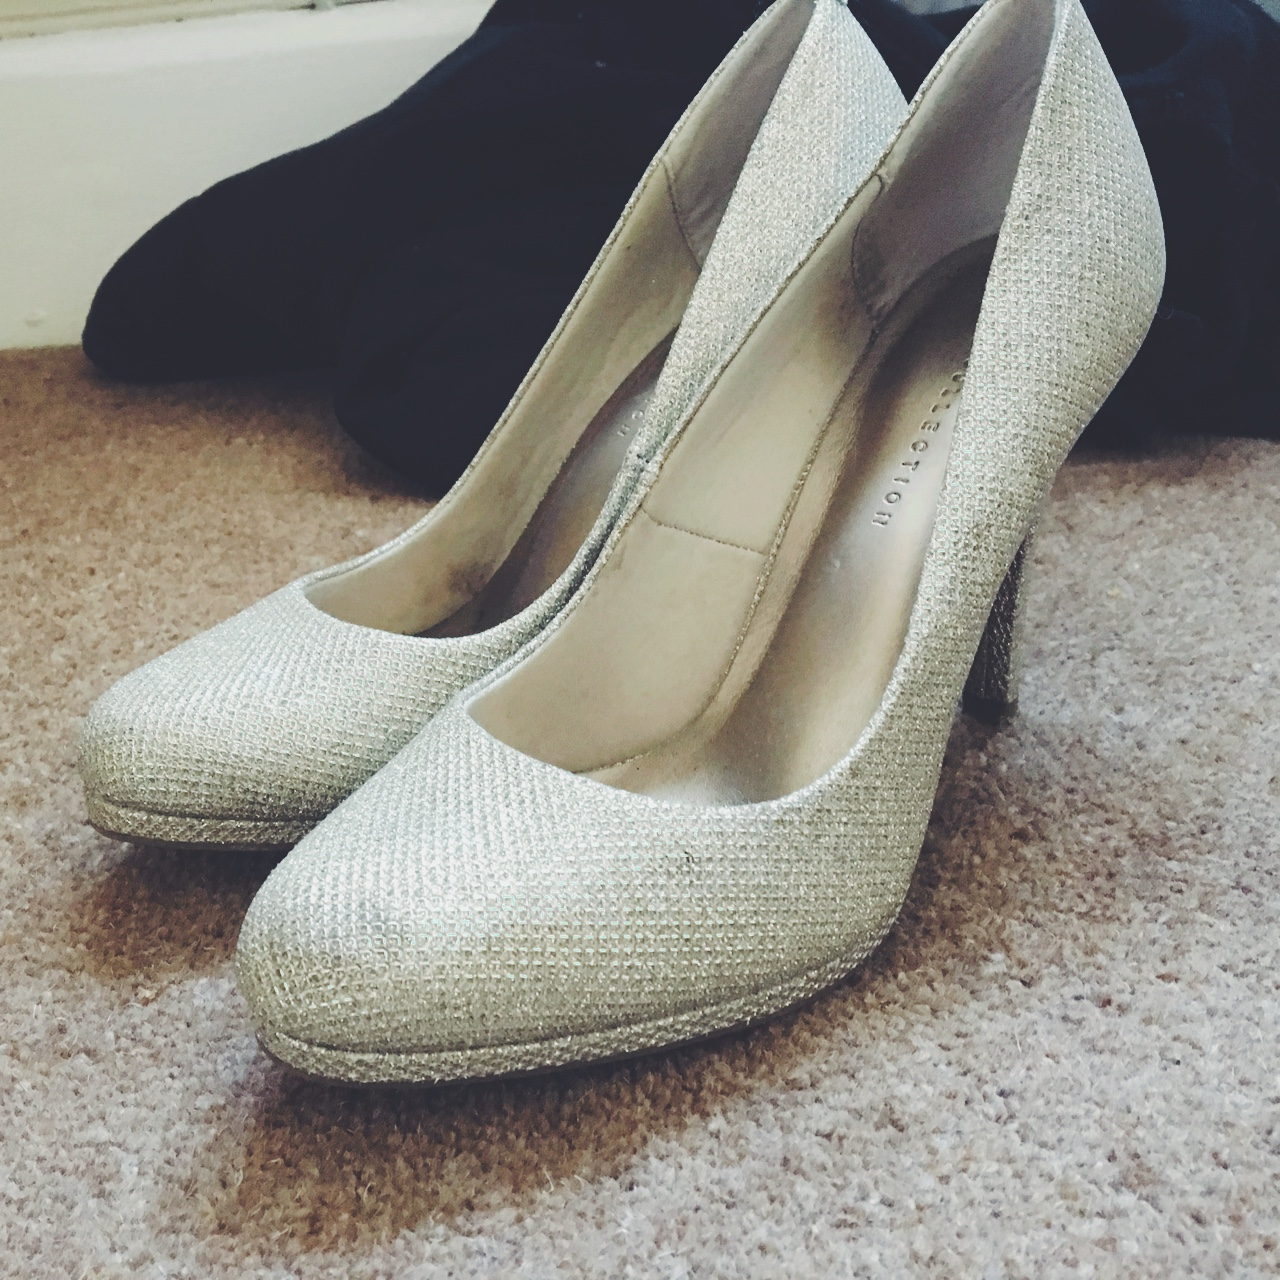 M and s gold glitter shoes. Worn once